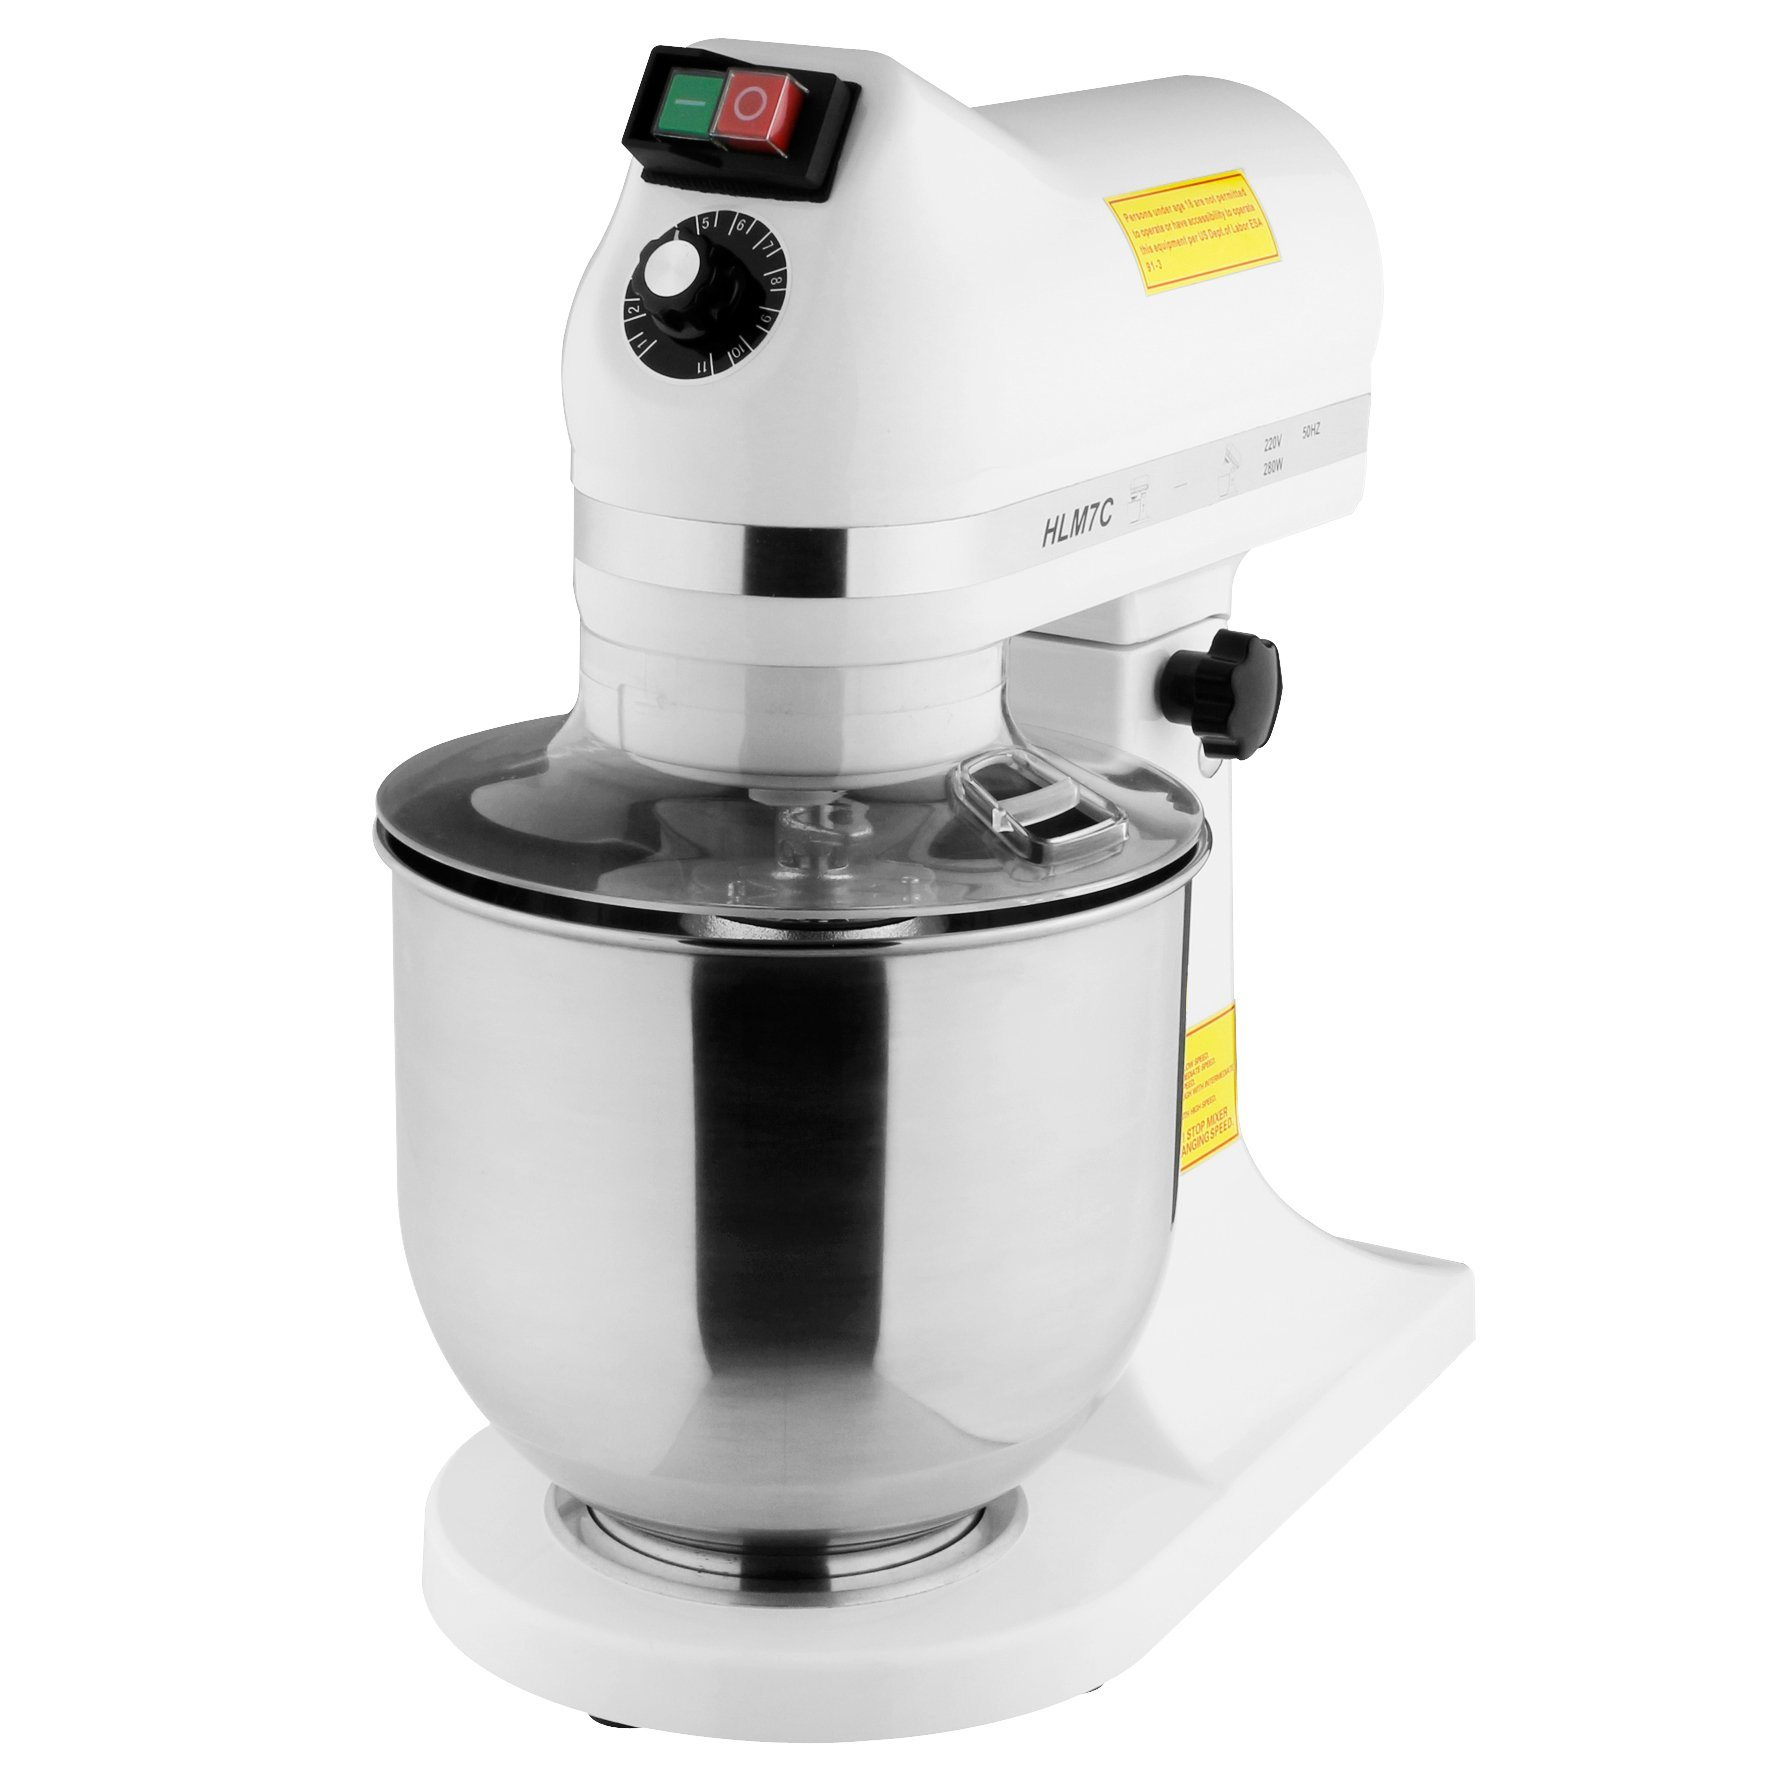 Planetary Mixer Amercian Style Restaurant Bakery Equipment Catering